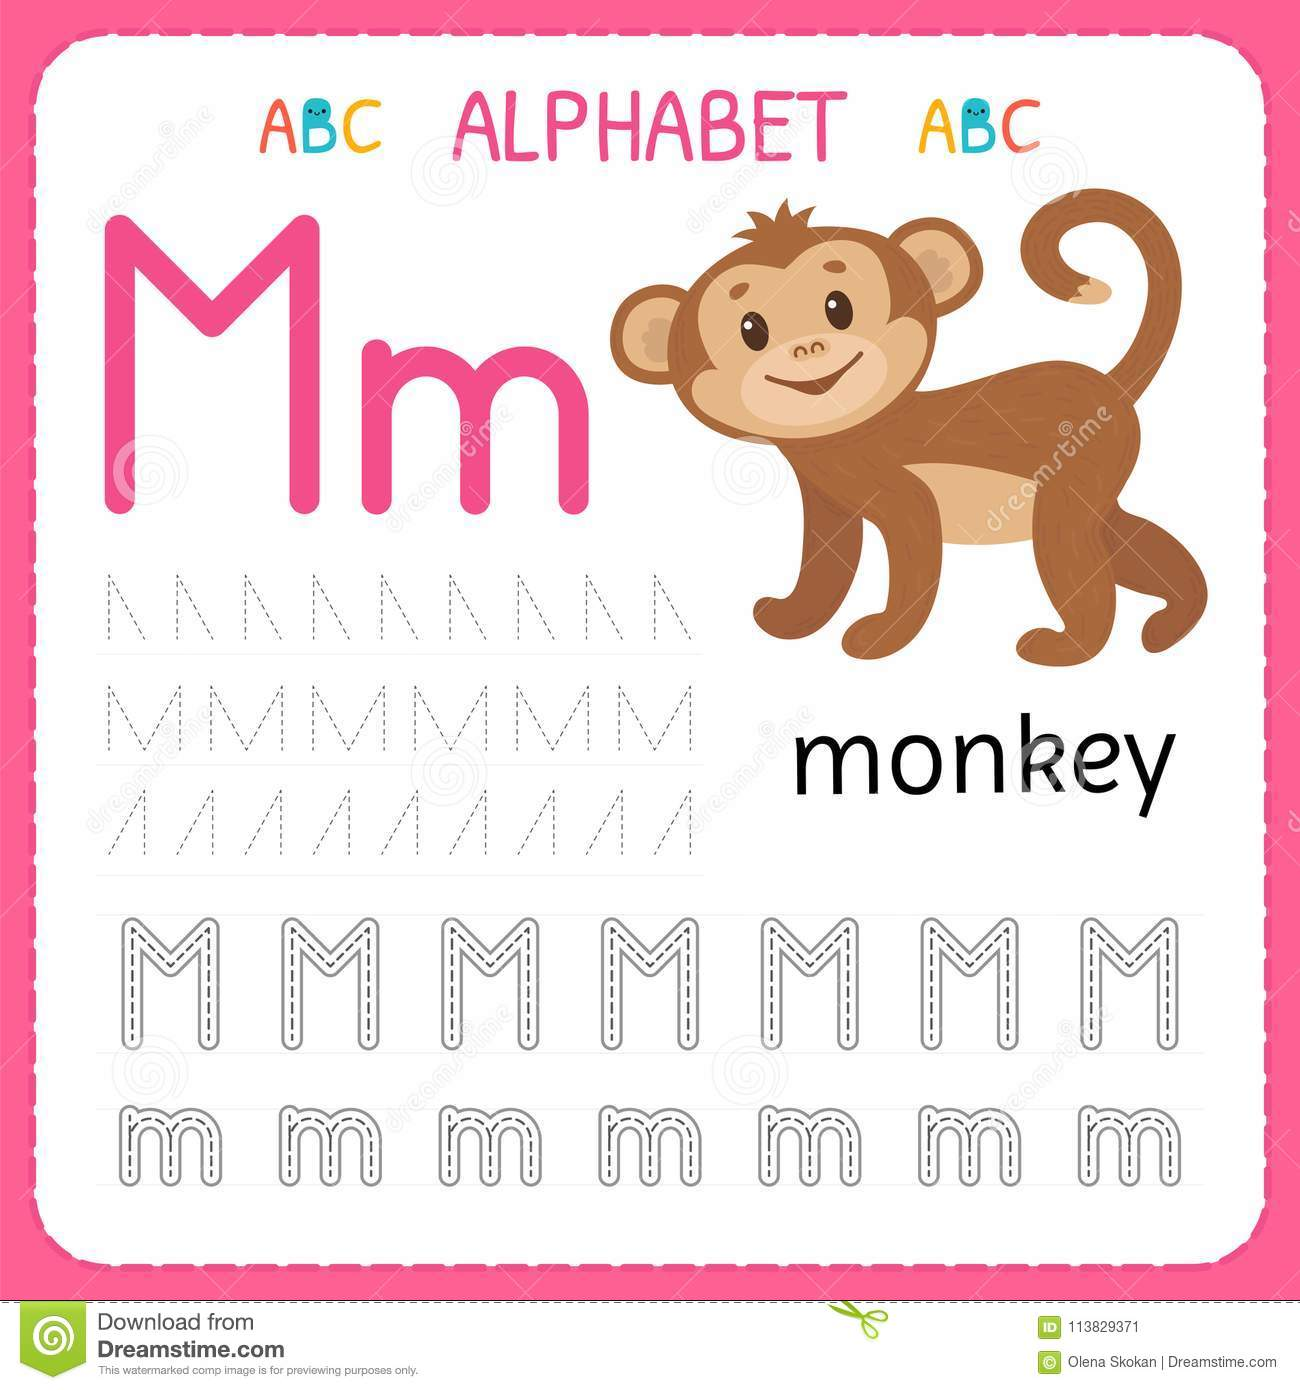 Alphabet Tracing Worksheet For Preschool And Kindergarten Writing Practice Letter M Exercises